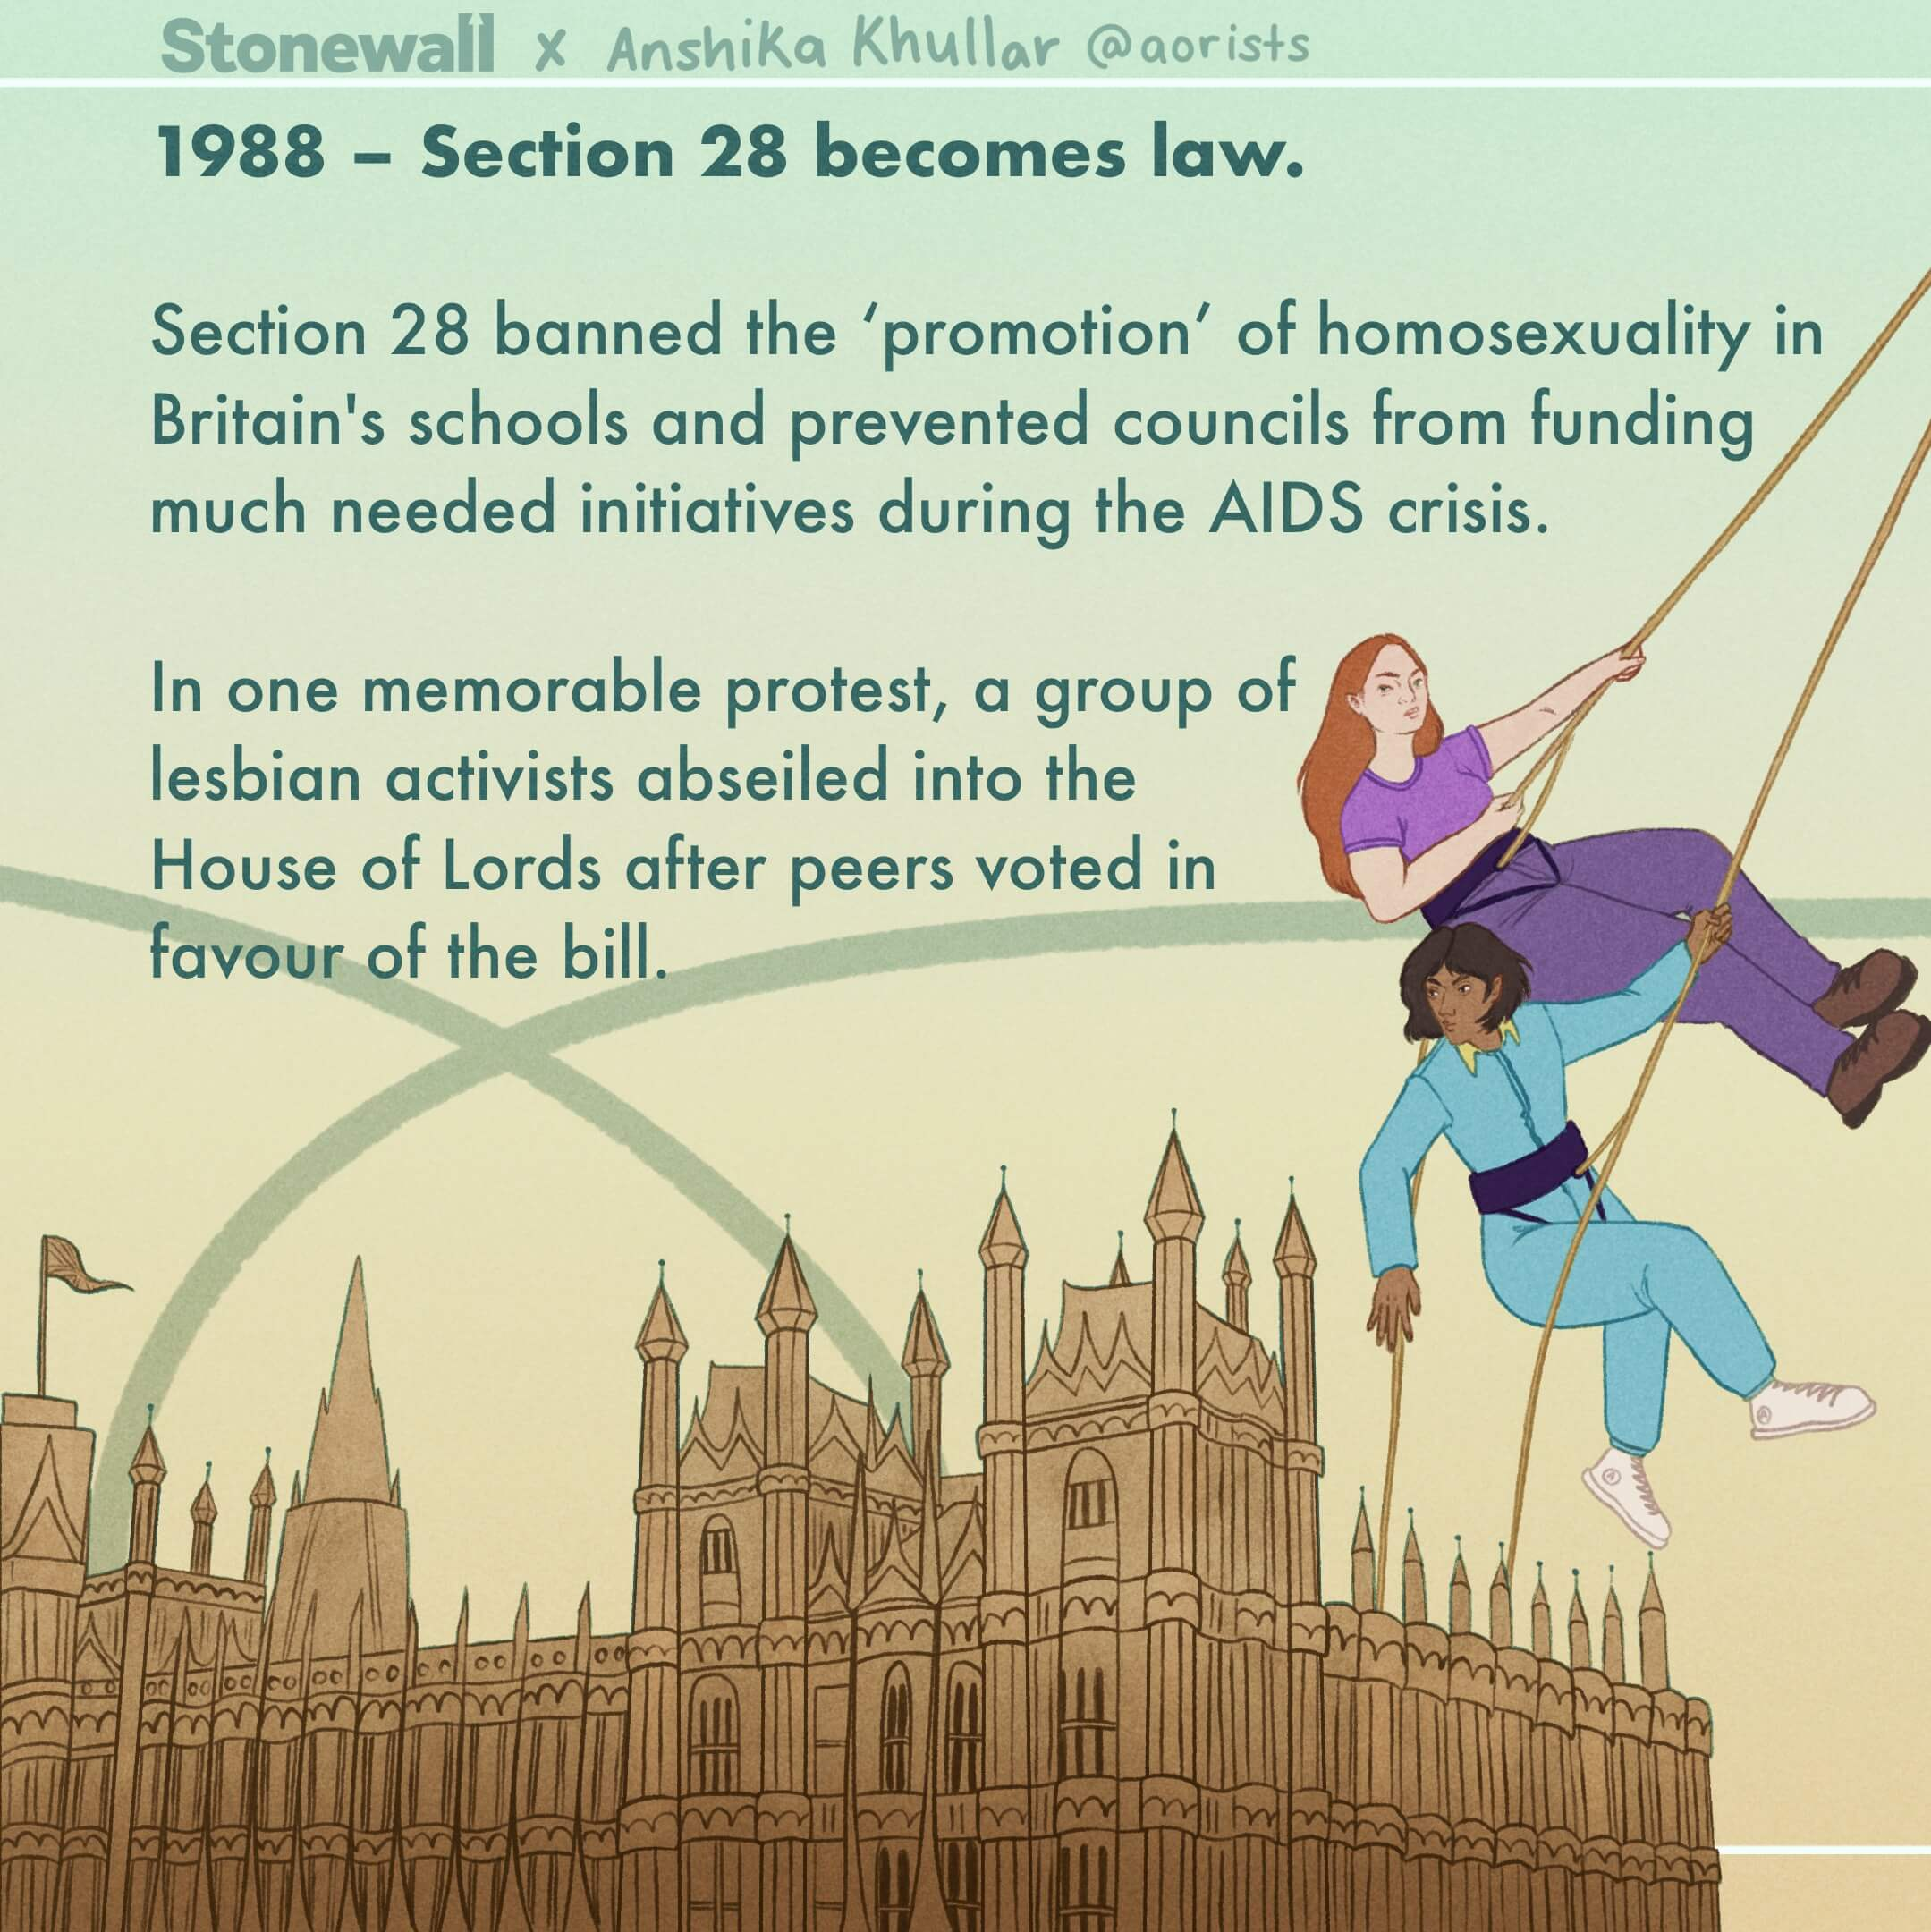 1988 – Section 28 becomes law. Section 28 banned the 'promotion' of homosexuality in Britain's schools and prevented councils from funding much needed initiatives during the AIDS crisis. In one memorable protest, a group of lesbian activists abseiled into the House of Lords after peers voted in favour of the bill. Illustration of: women abseiling down from the top of the slide, as if into the House of Lords (represented at the bottom of the slide)